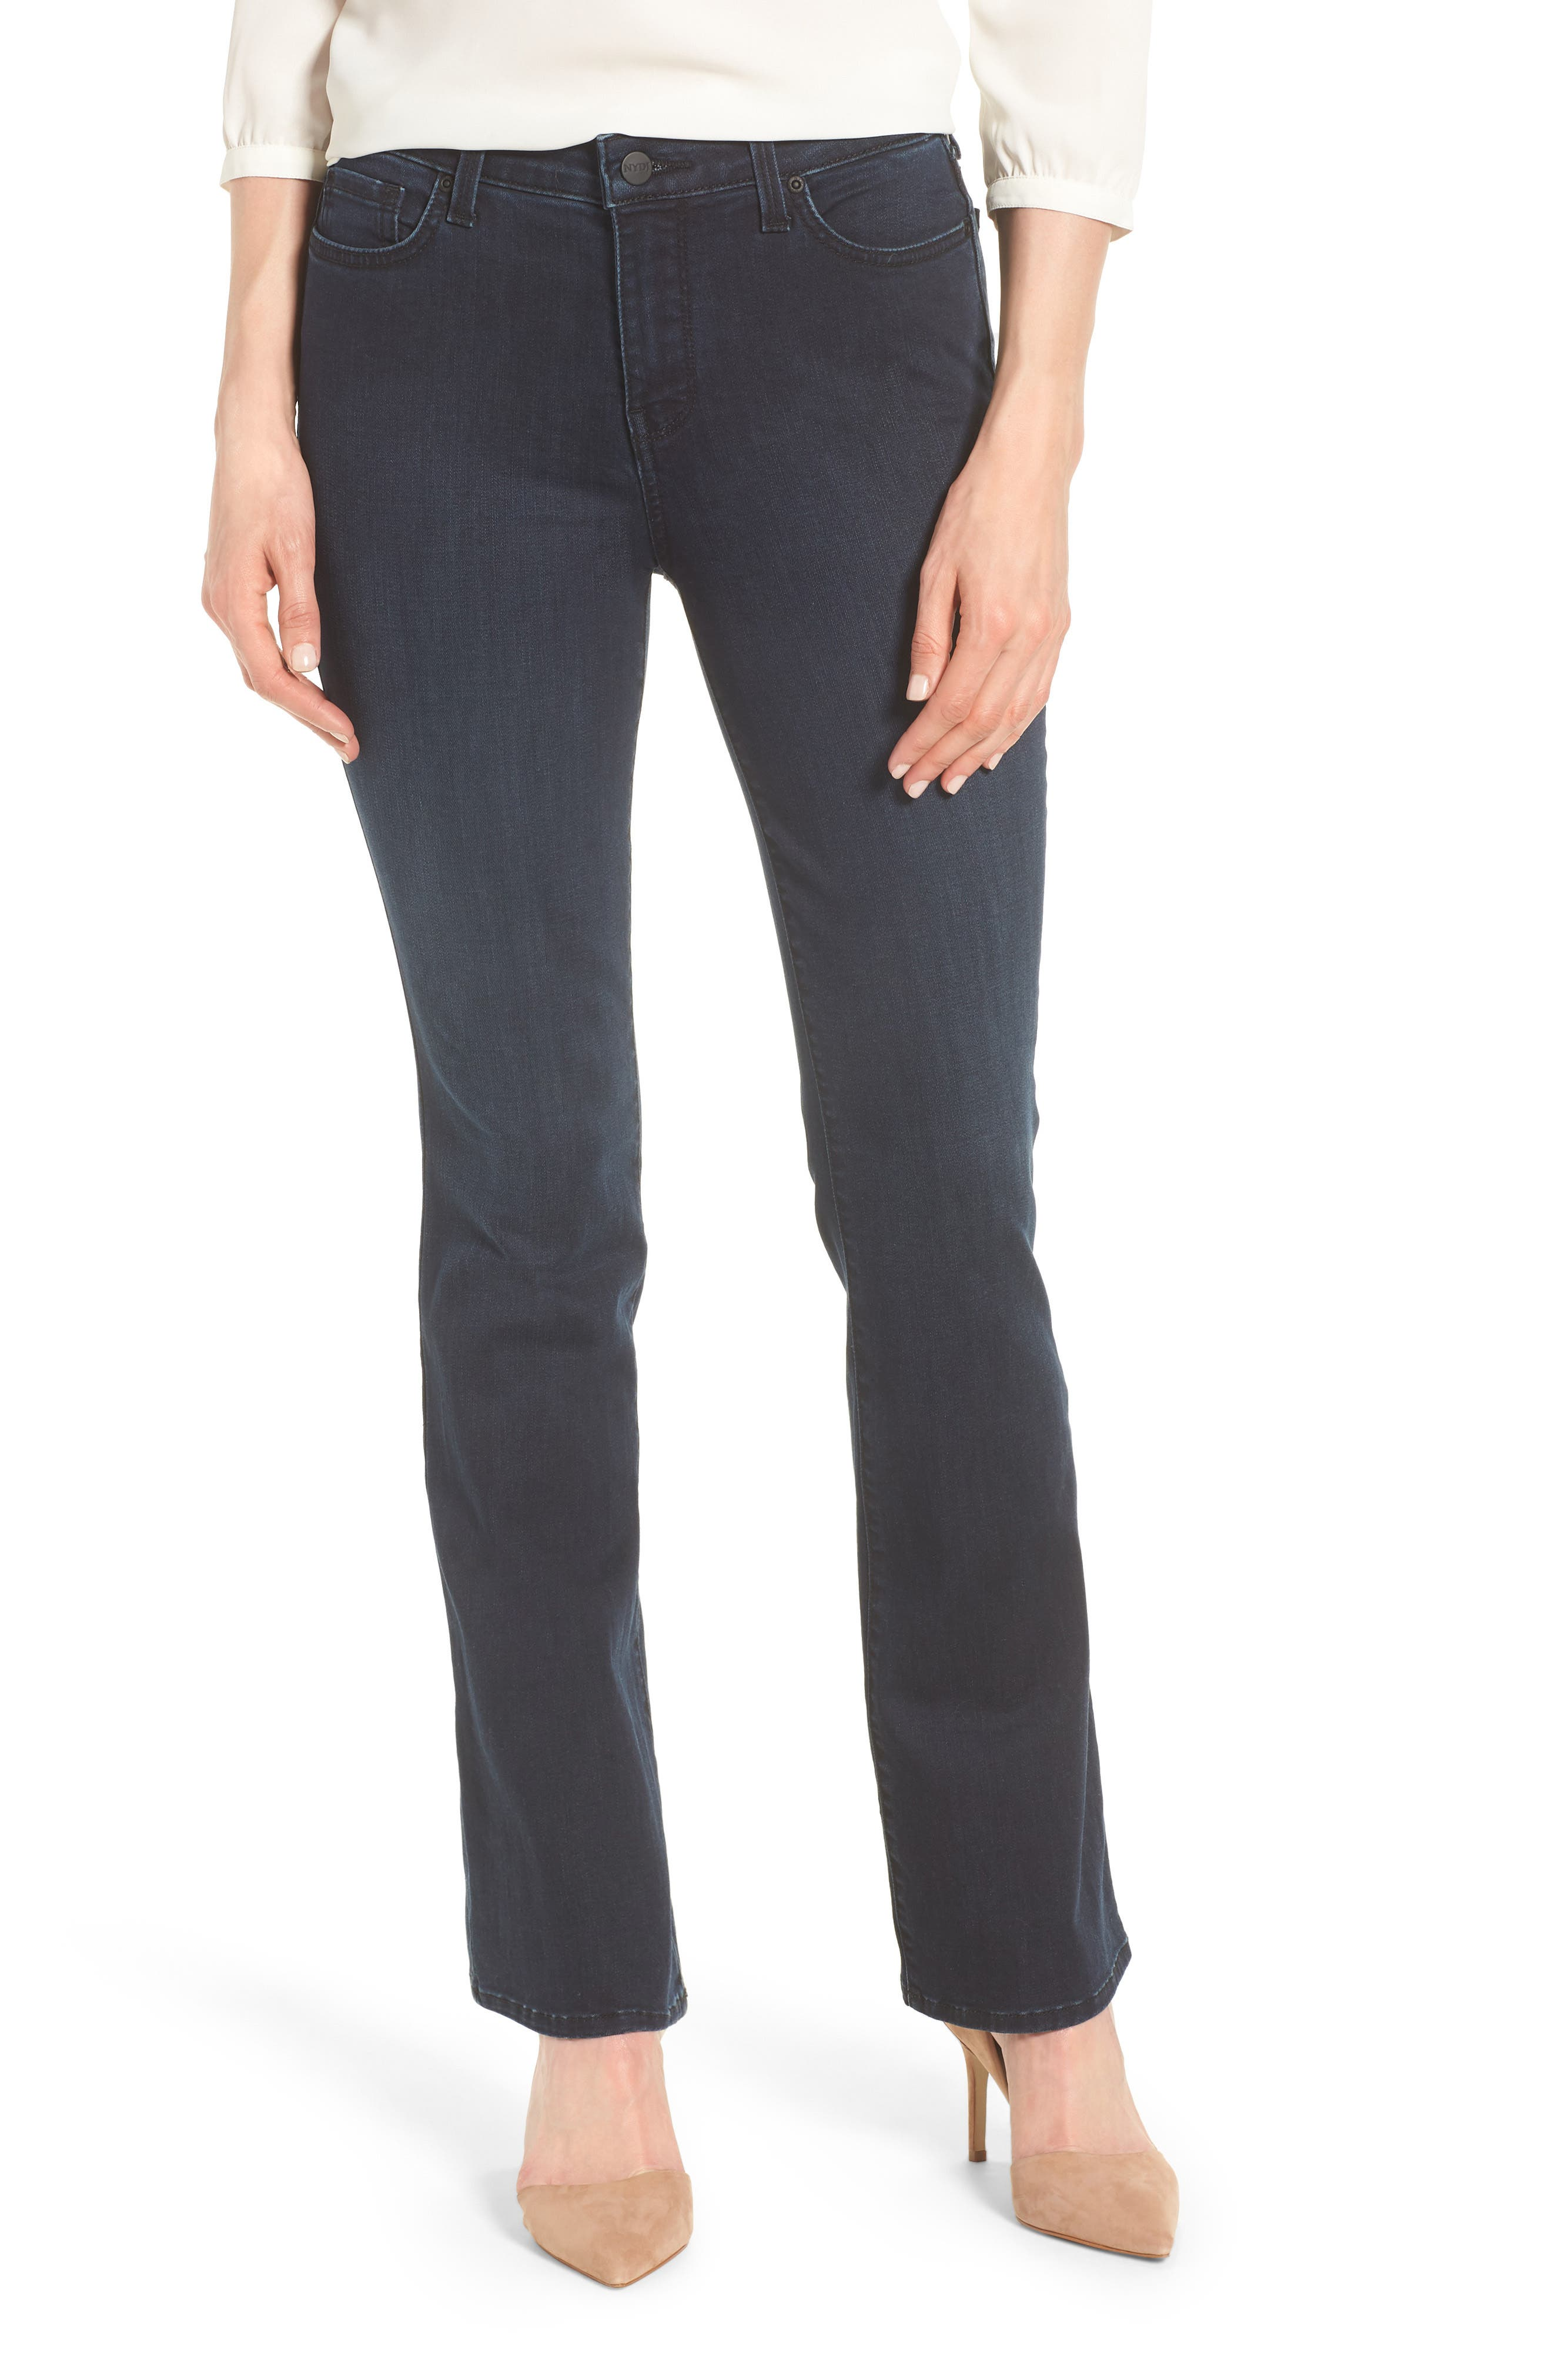 Barbara Bootcut Stretch Skinny Jeans,                         Main,                         color, 407